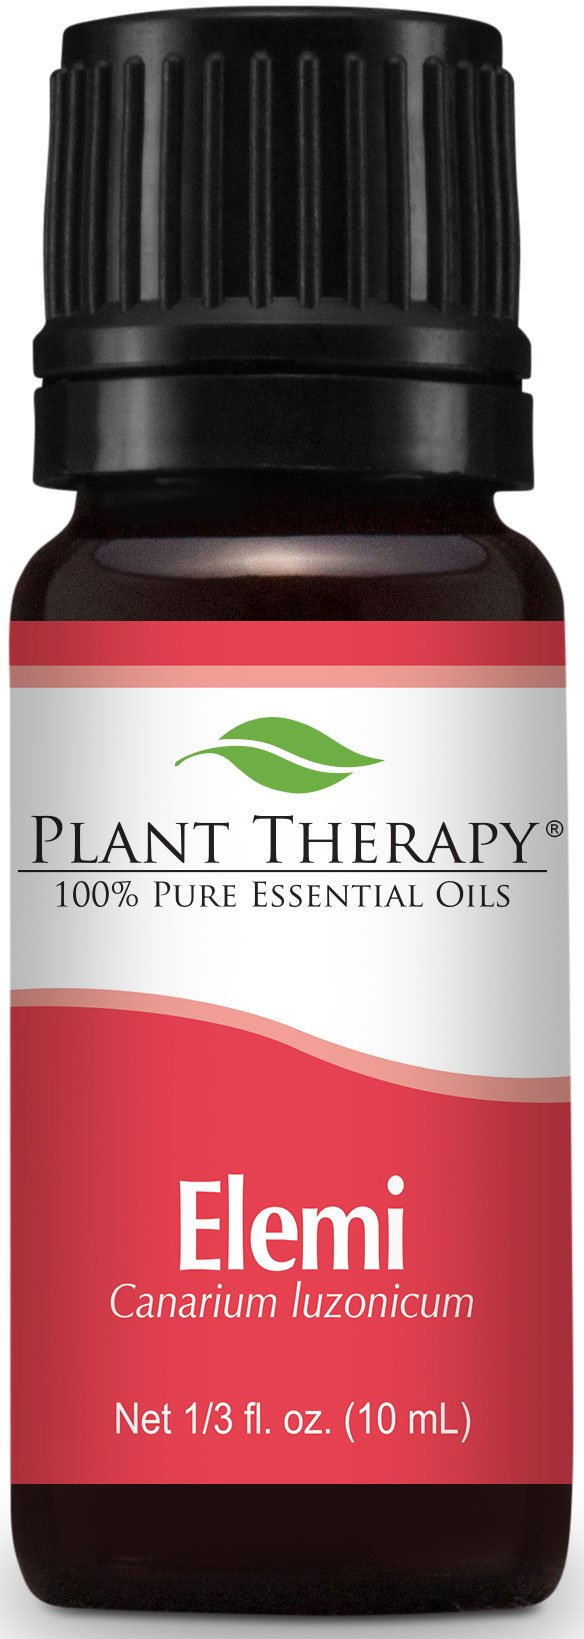 Plant Therapy Elemi Essential Oil. 10 ml (1/3 oz). 100% Pure, Undiluted, Therapeutic Grade. (Pack of 12)